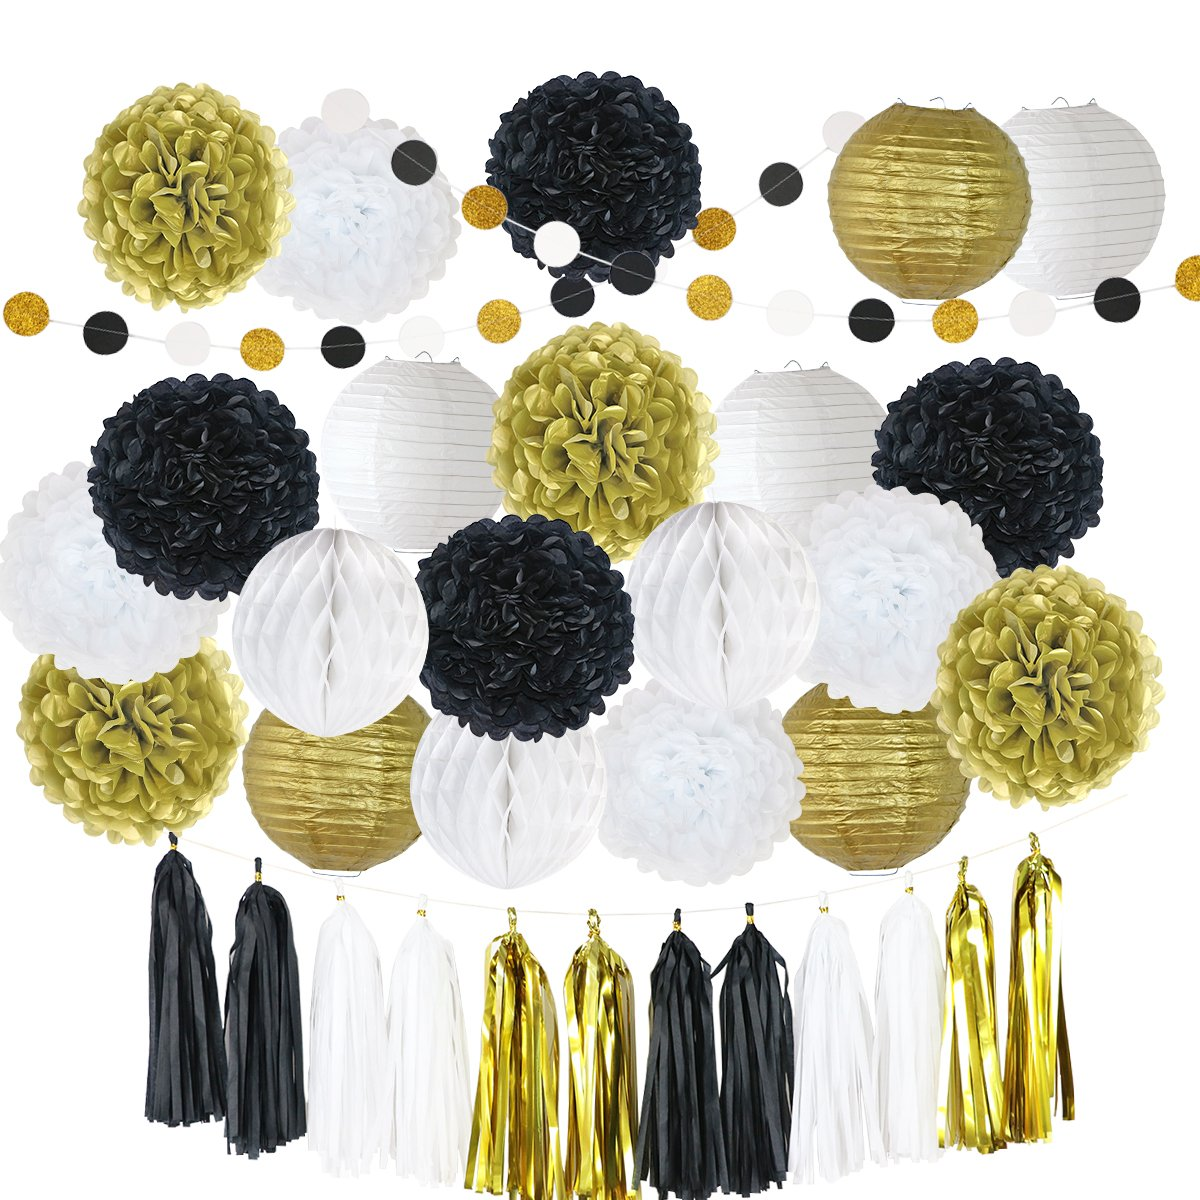 LITAUS Black and Gold Birthday Party Decorations, Tissue Pom Poms, Paper Lanterns, Paper Garland Circle Dots Hanging Decorations for Birthday Party Supplies